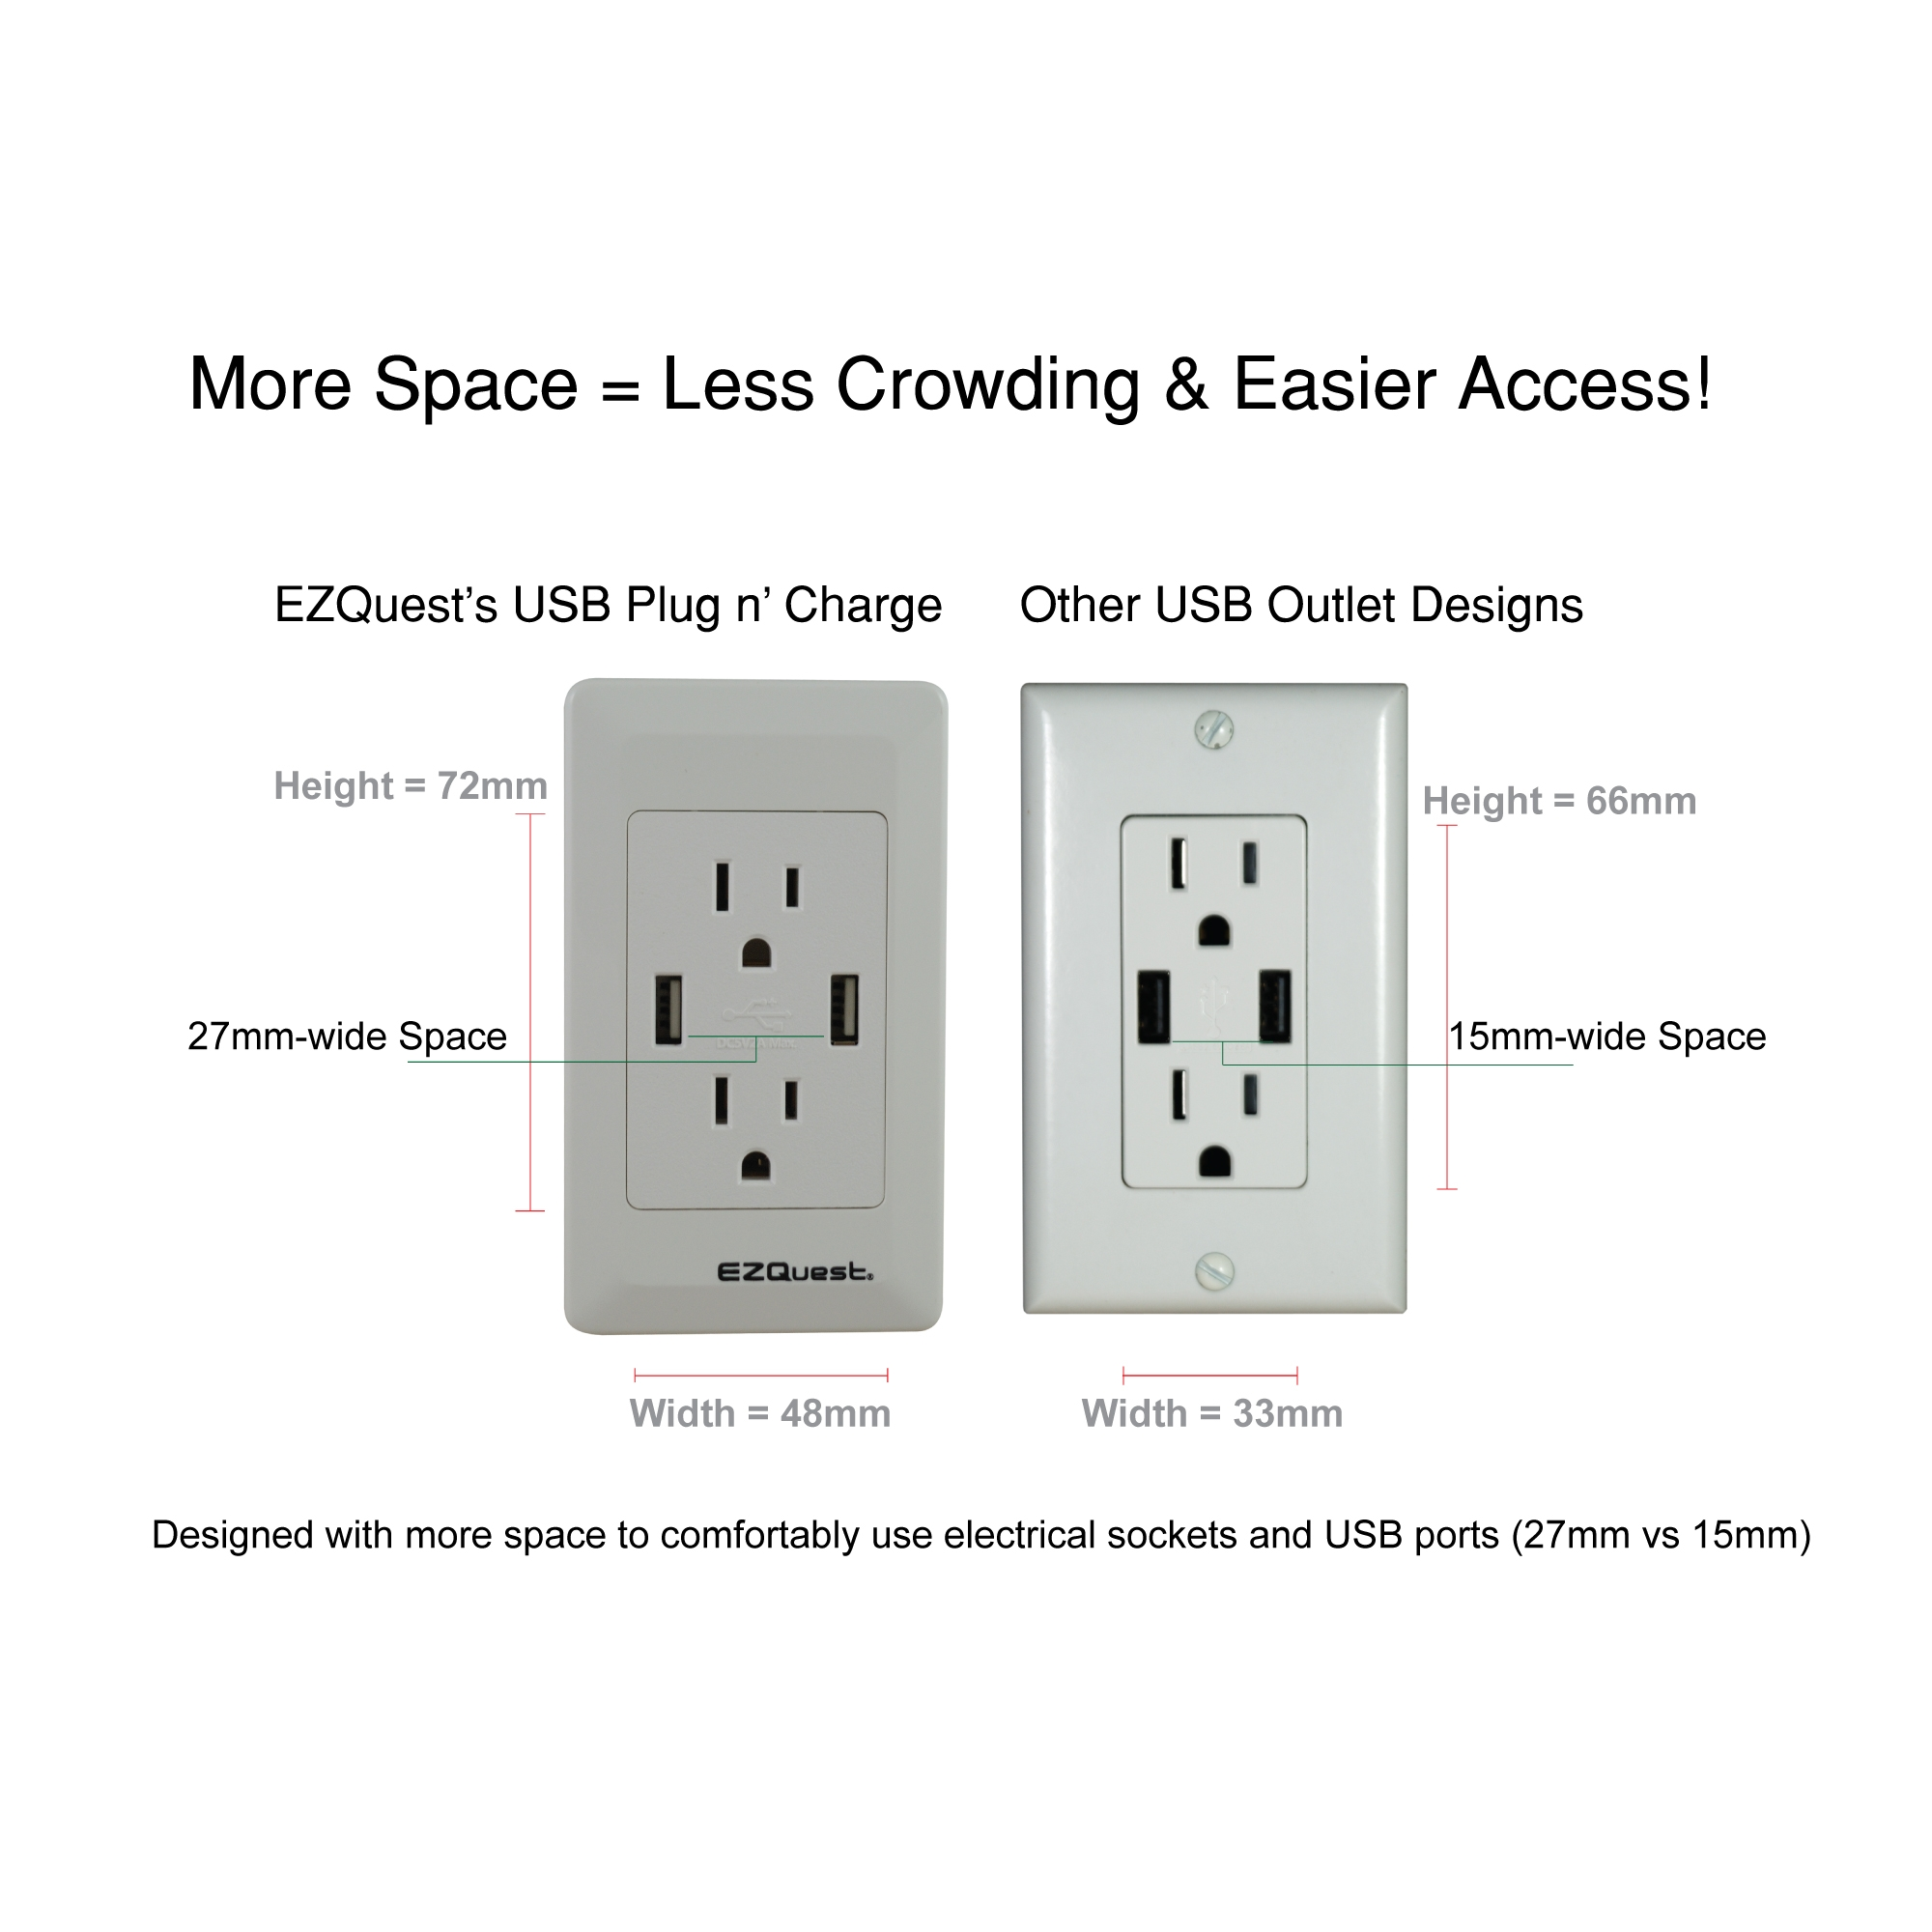 X73692-usb-wall-charger-comparison-expanded-view